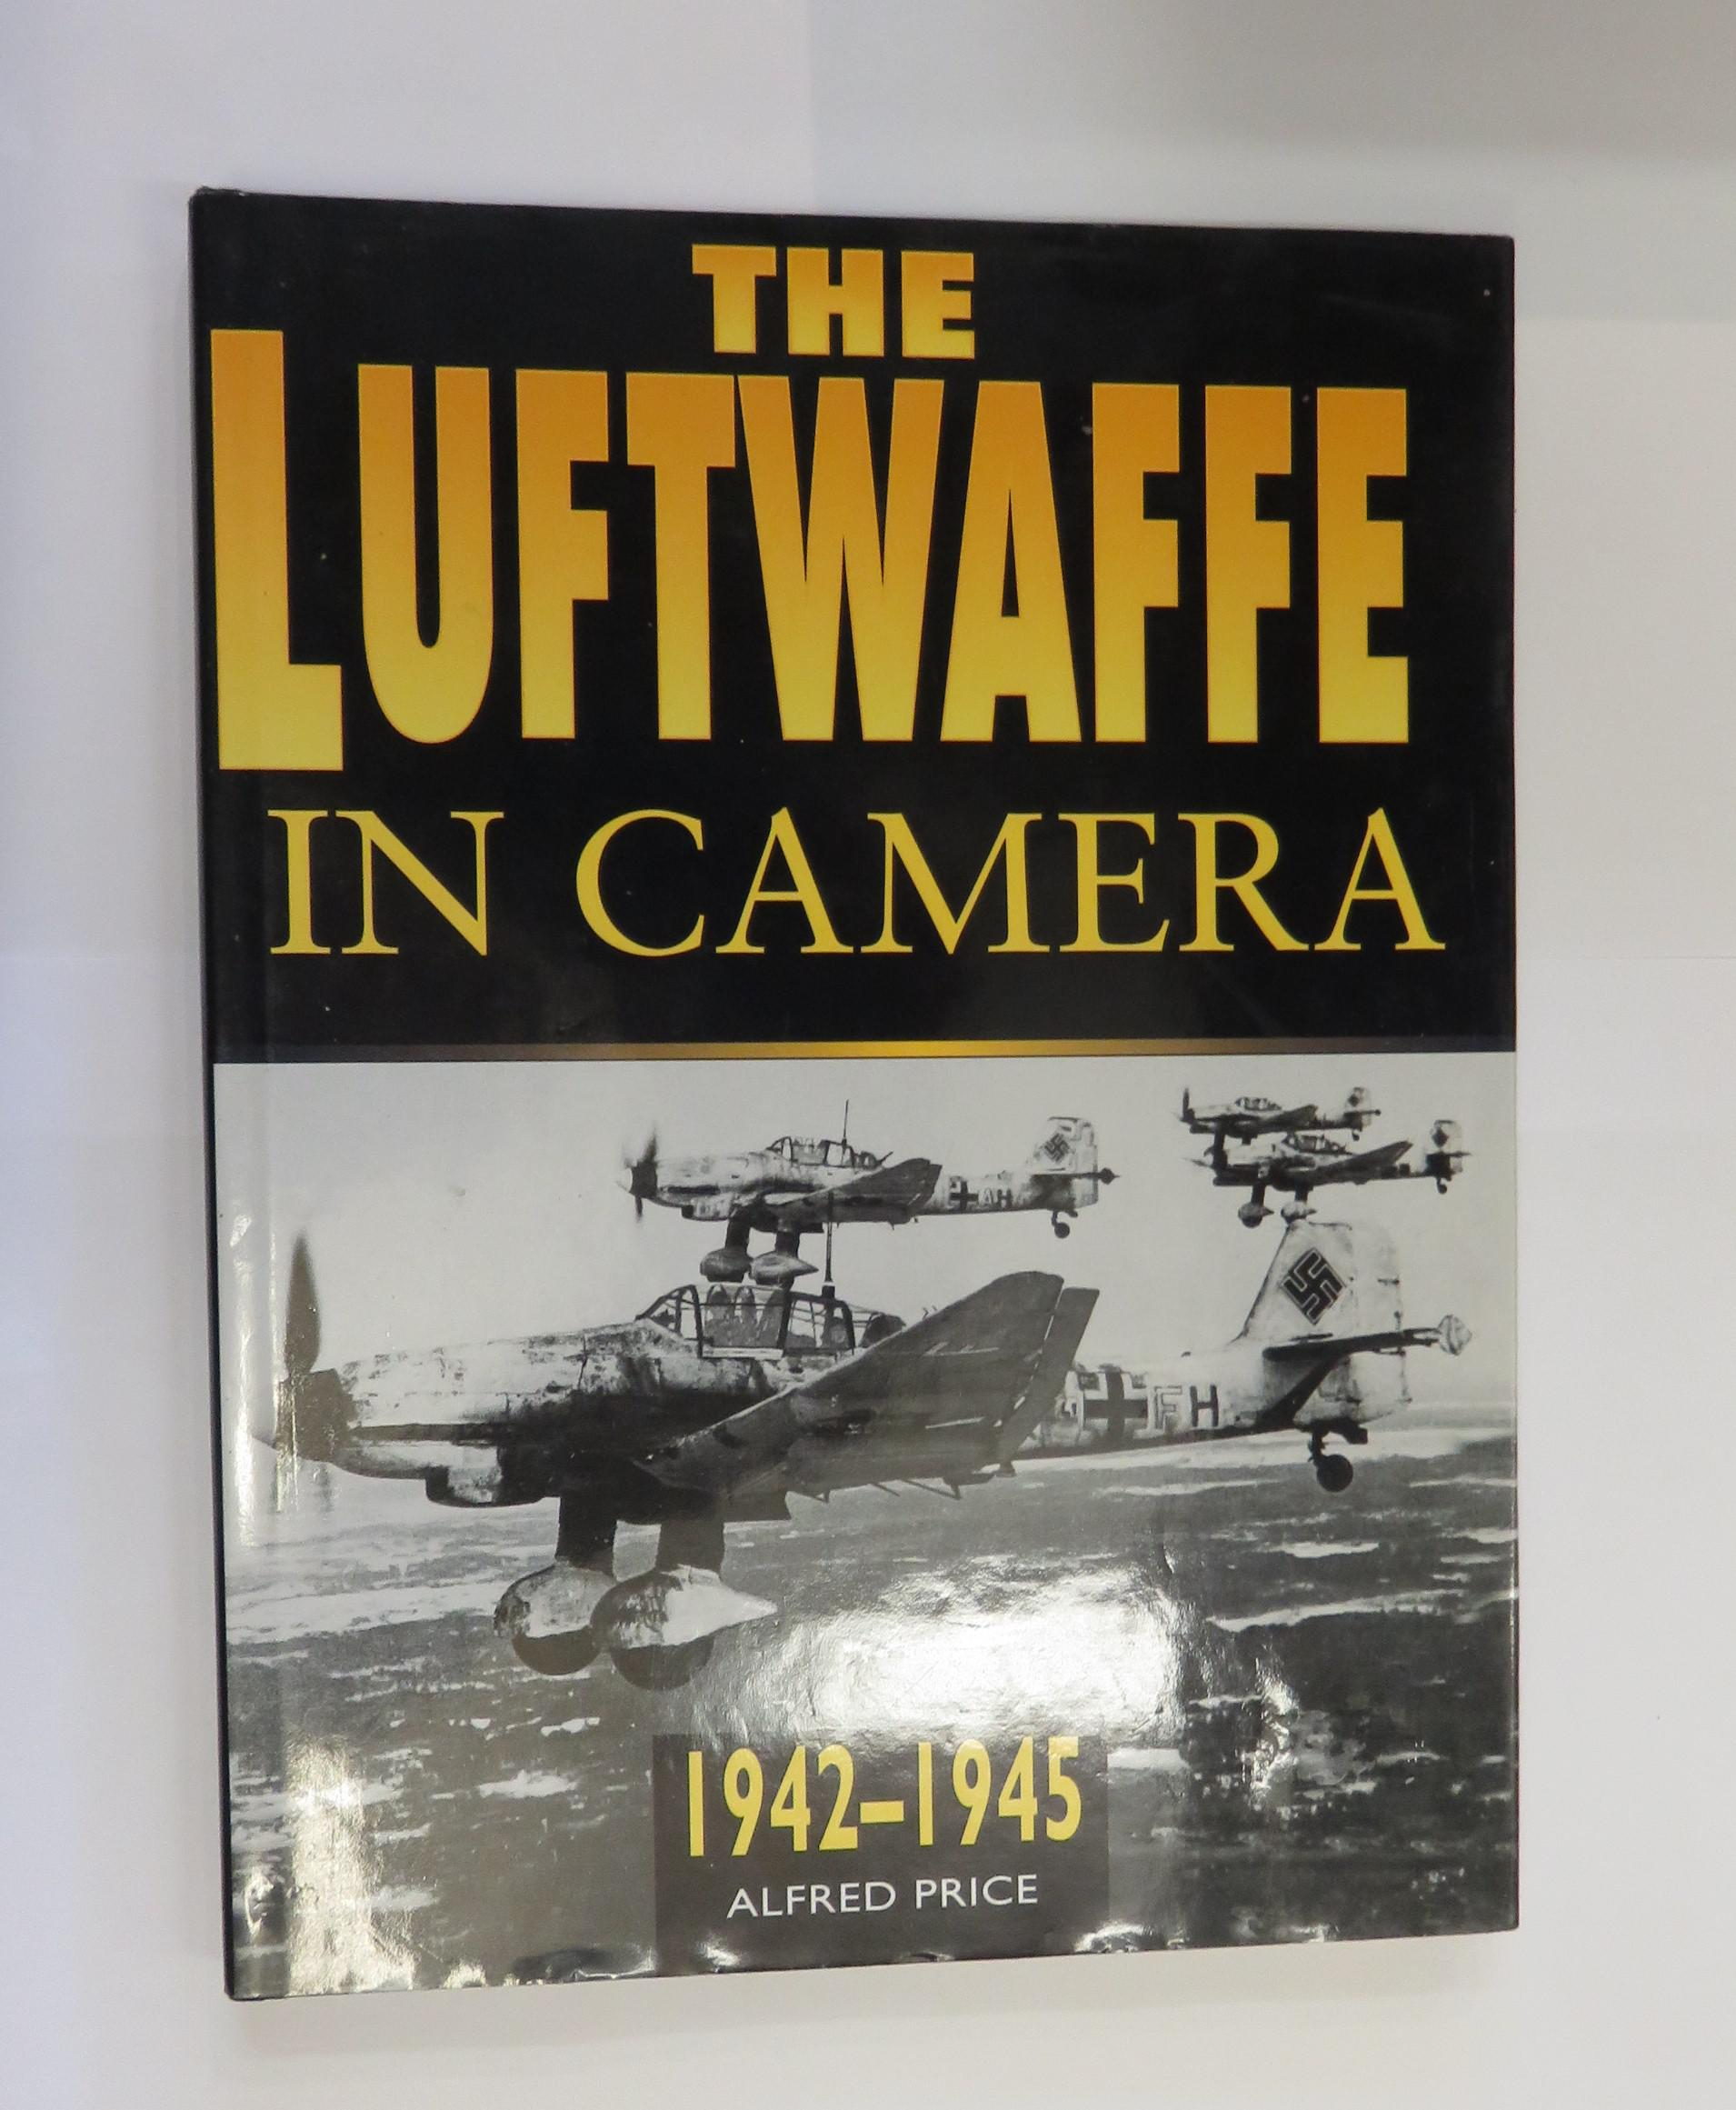 The Luftwaffe In Camera 1942-1945